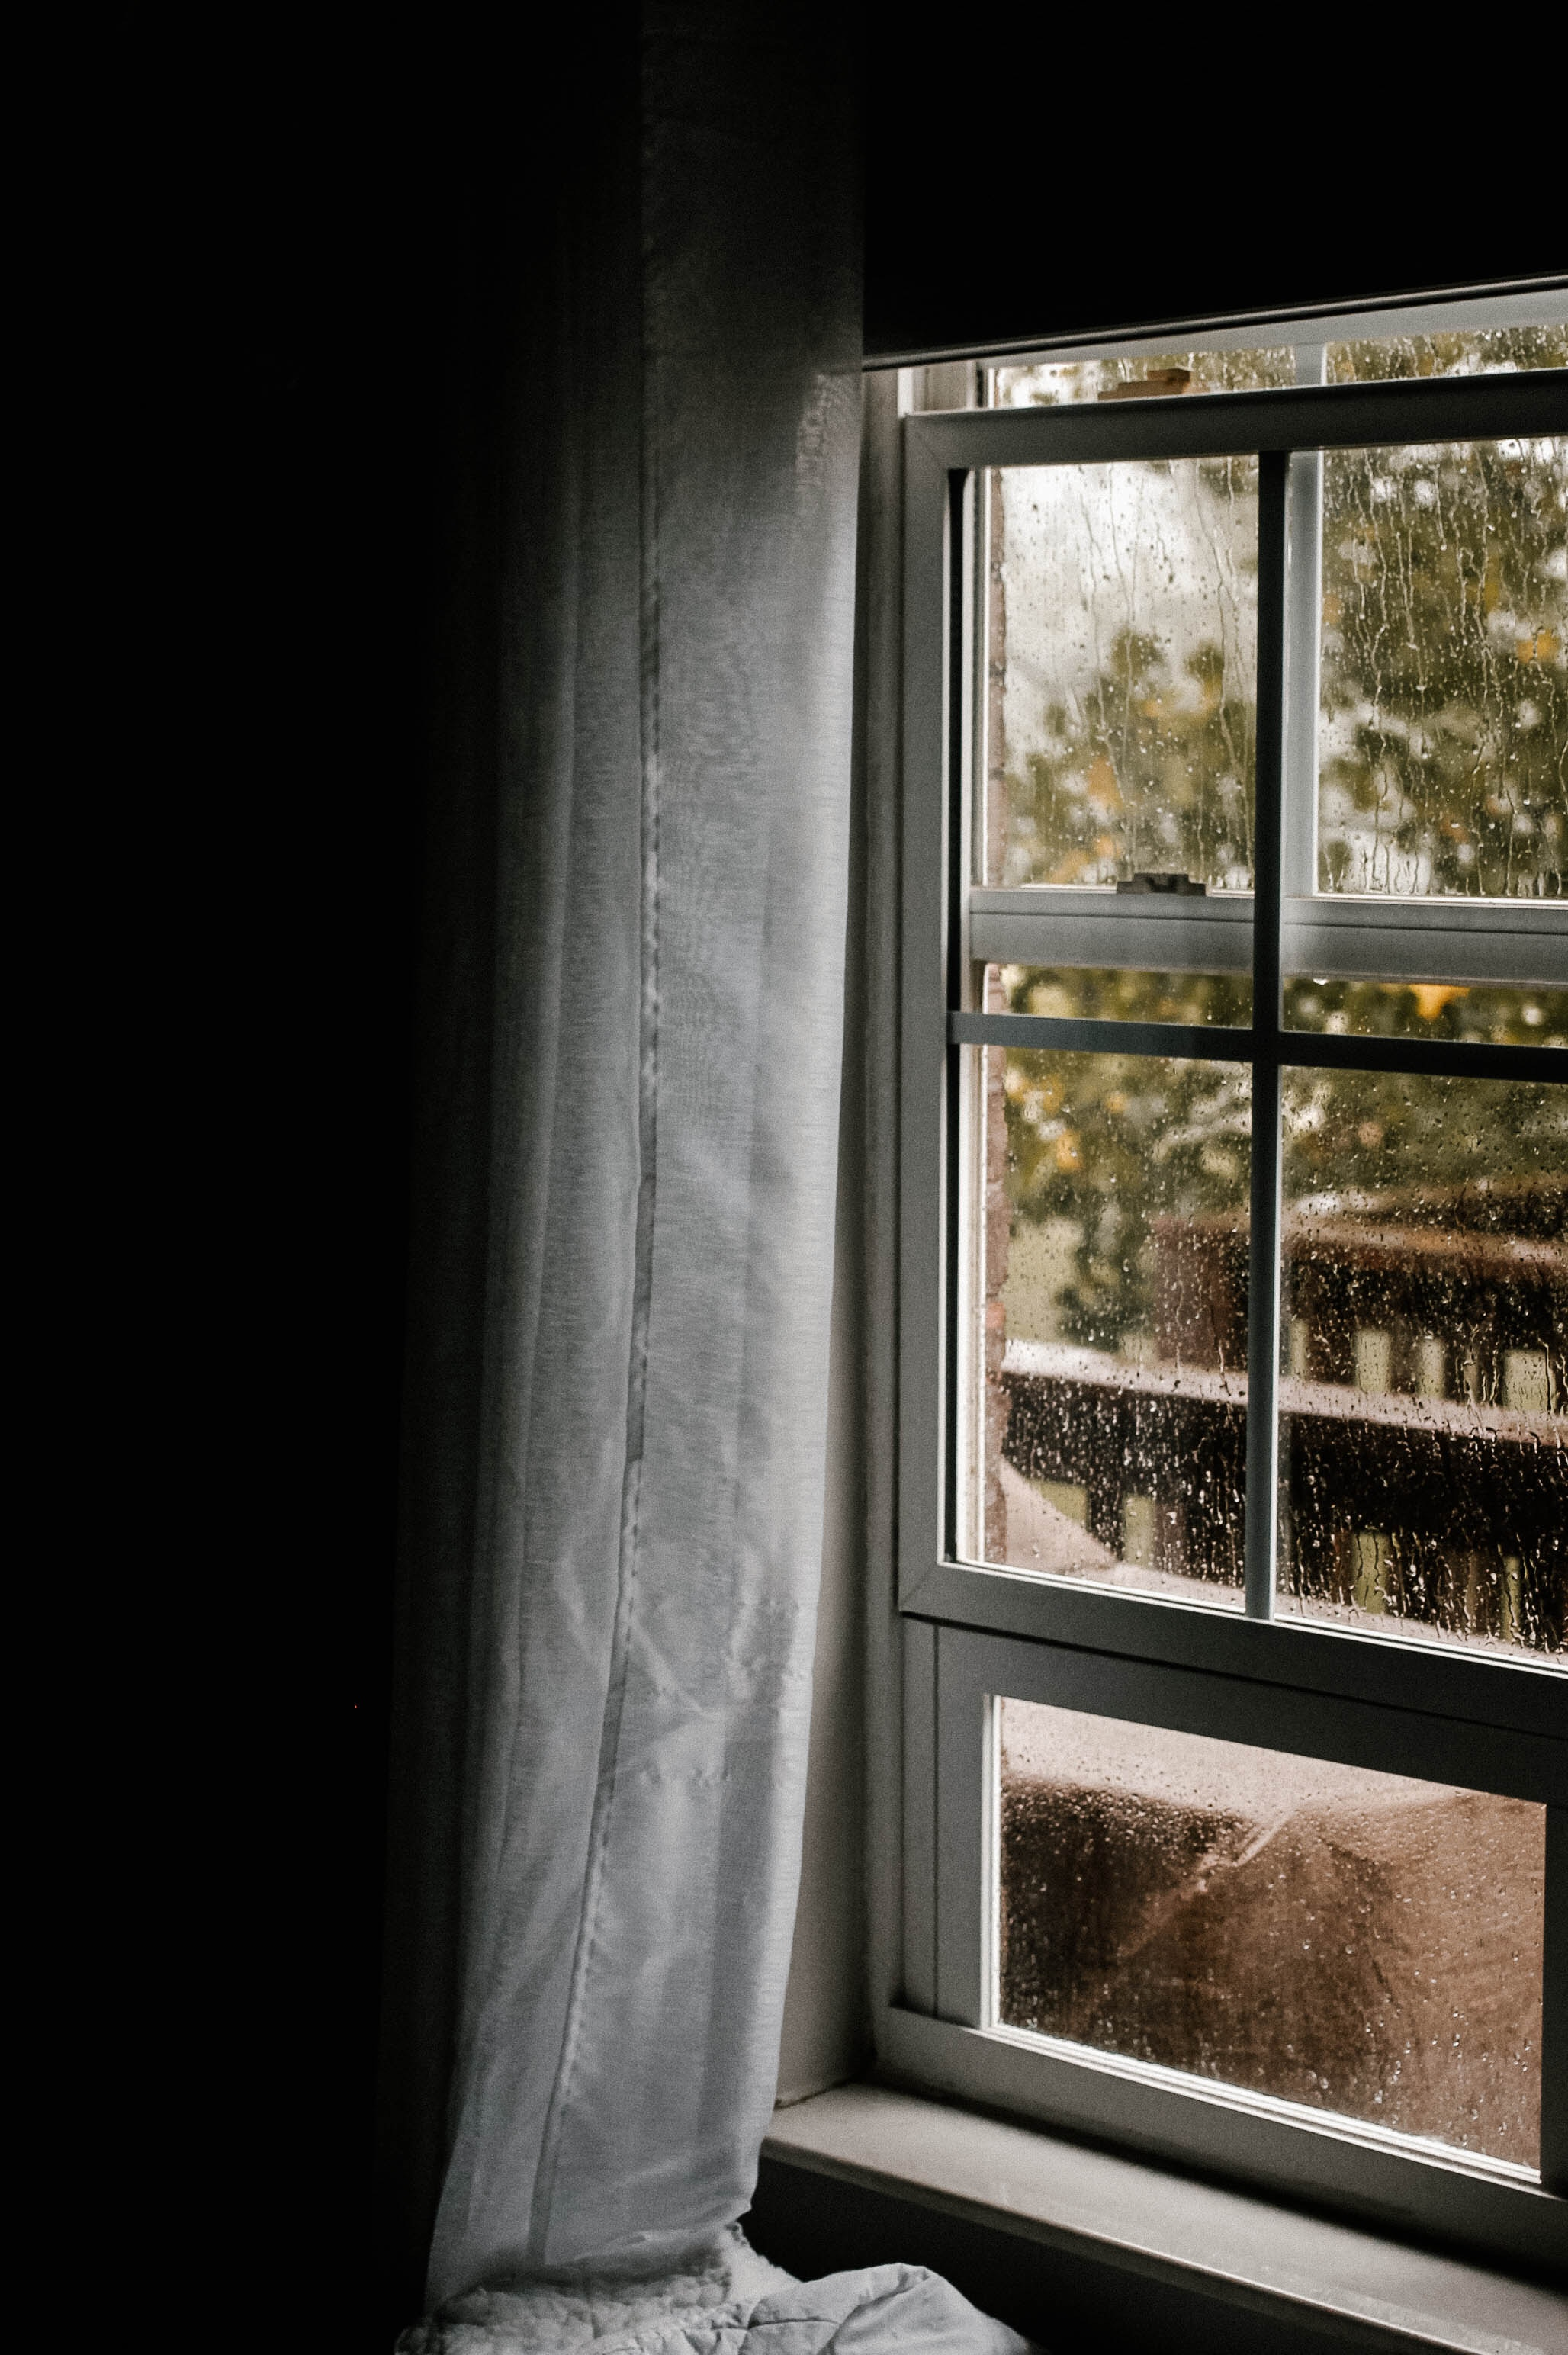 A rain covered window in an early spring day.